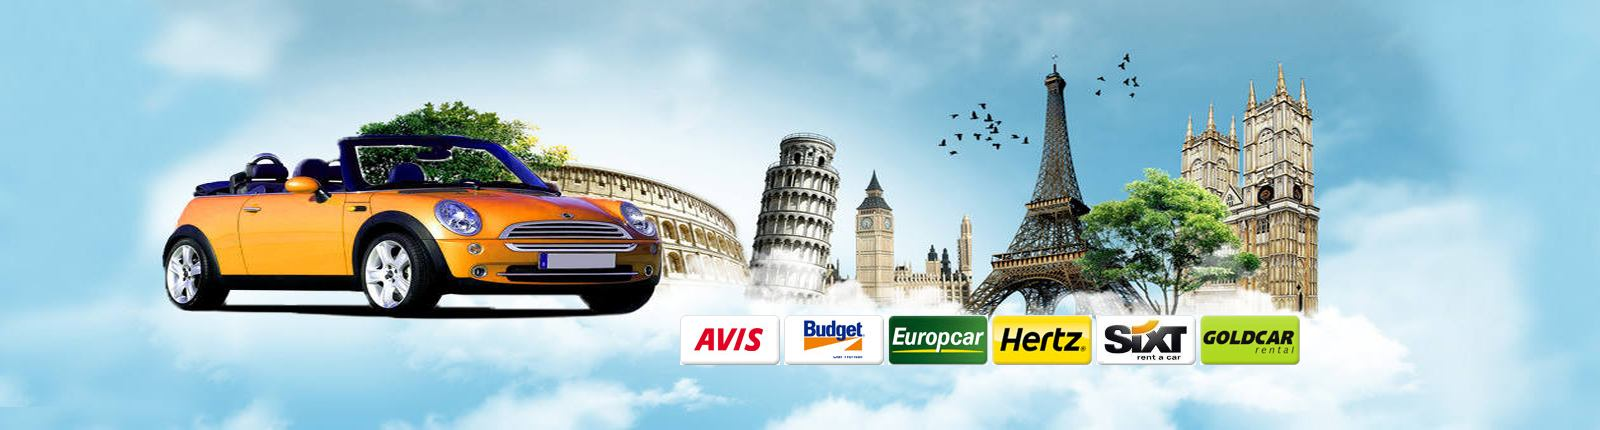 City Car Rentals Antigua Car Hire Hertz Avis Europcar Rent